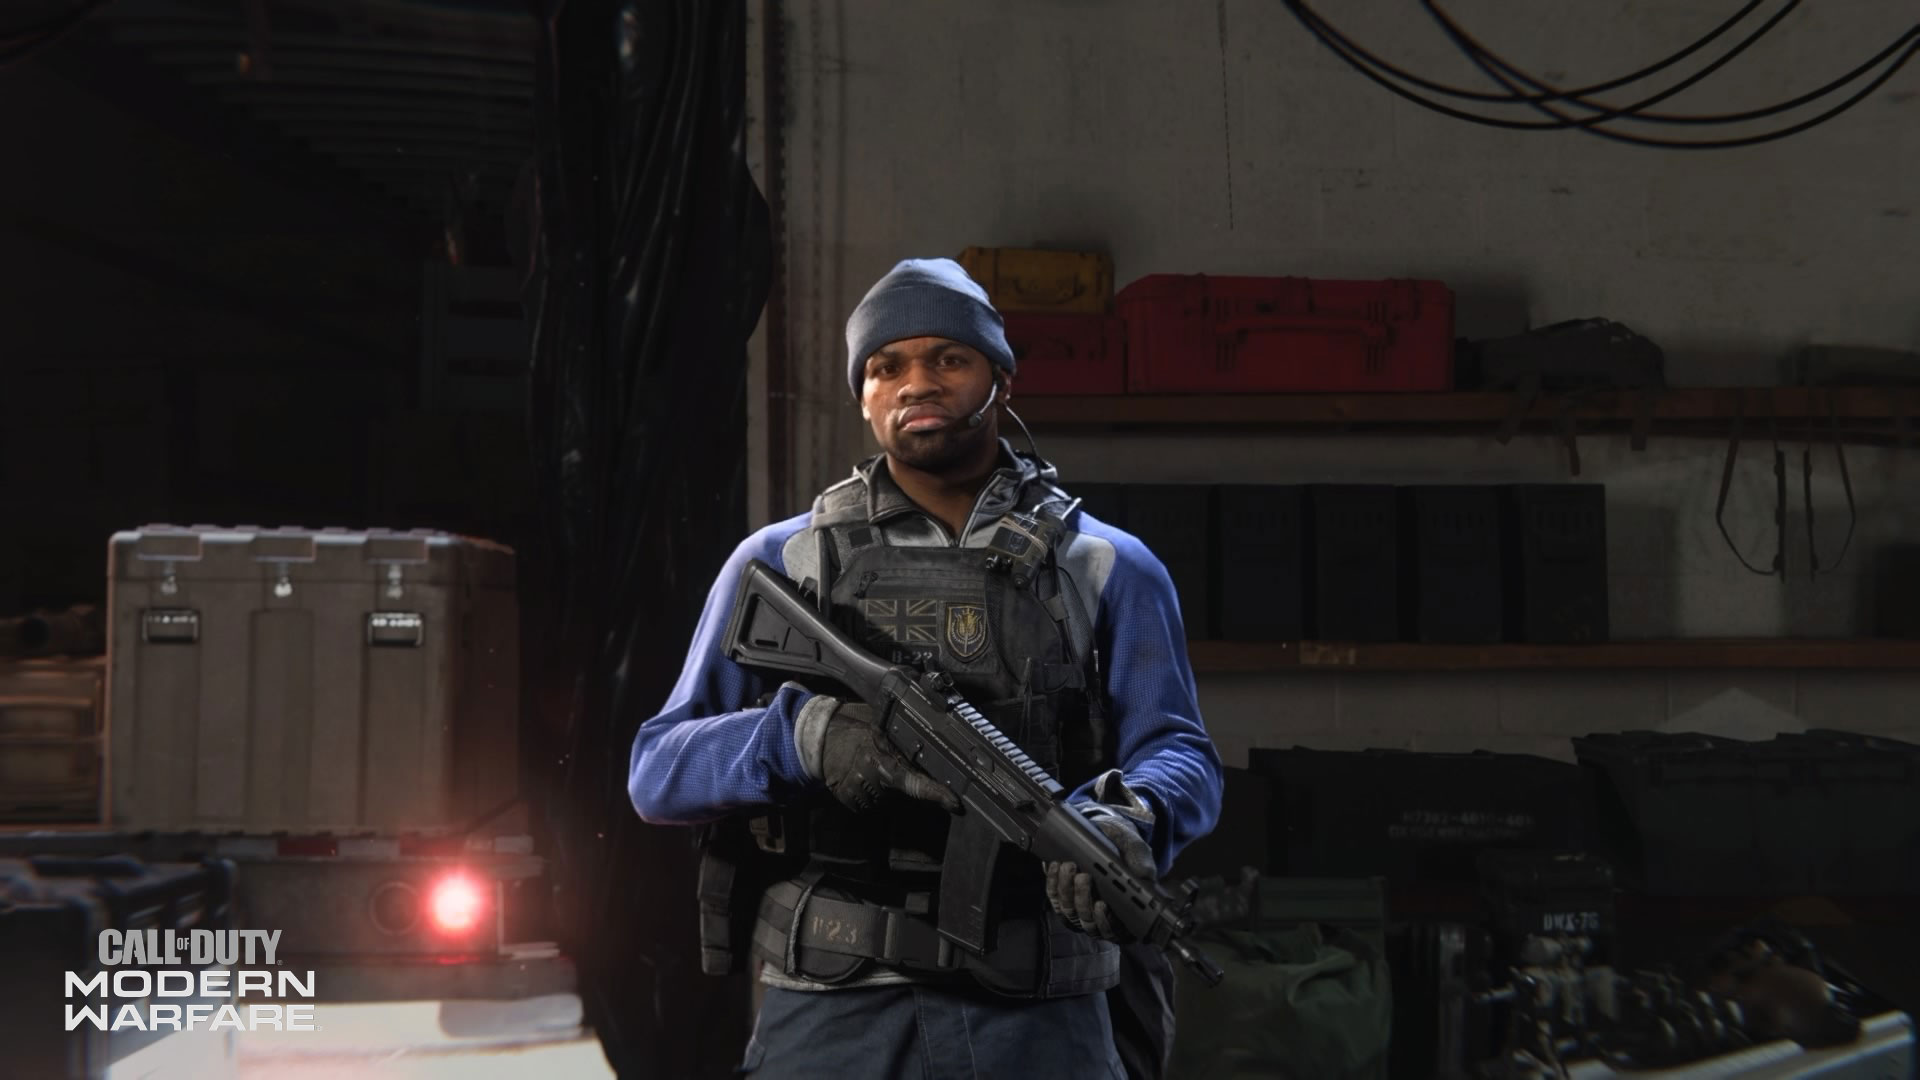 The Rank Up Report #16: Platinum SMGs, Operator Missions, and Loadout Updates - Image 8